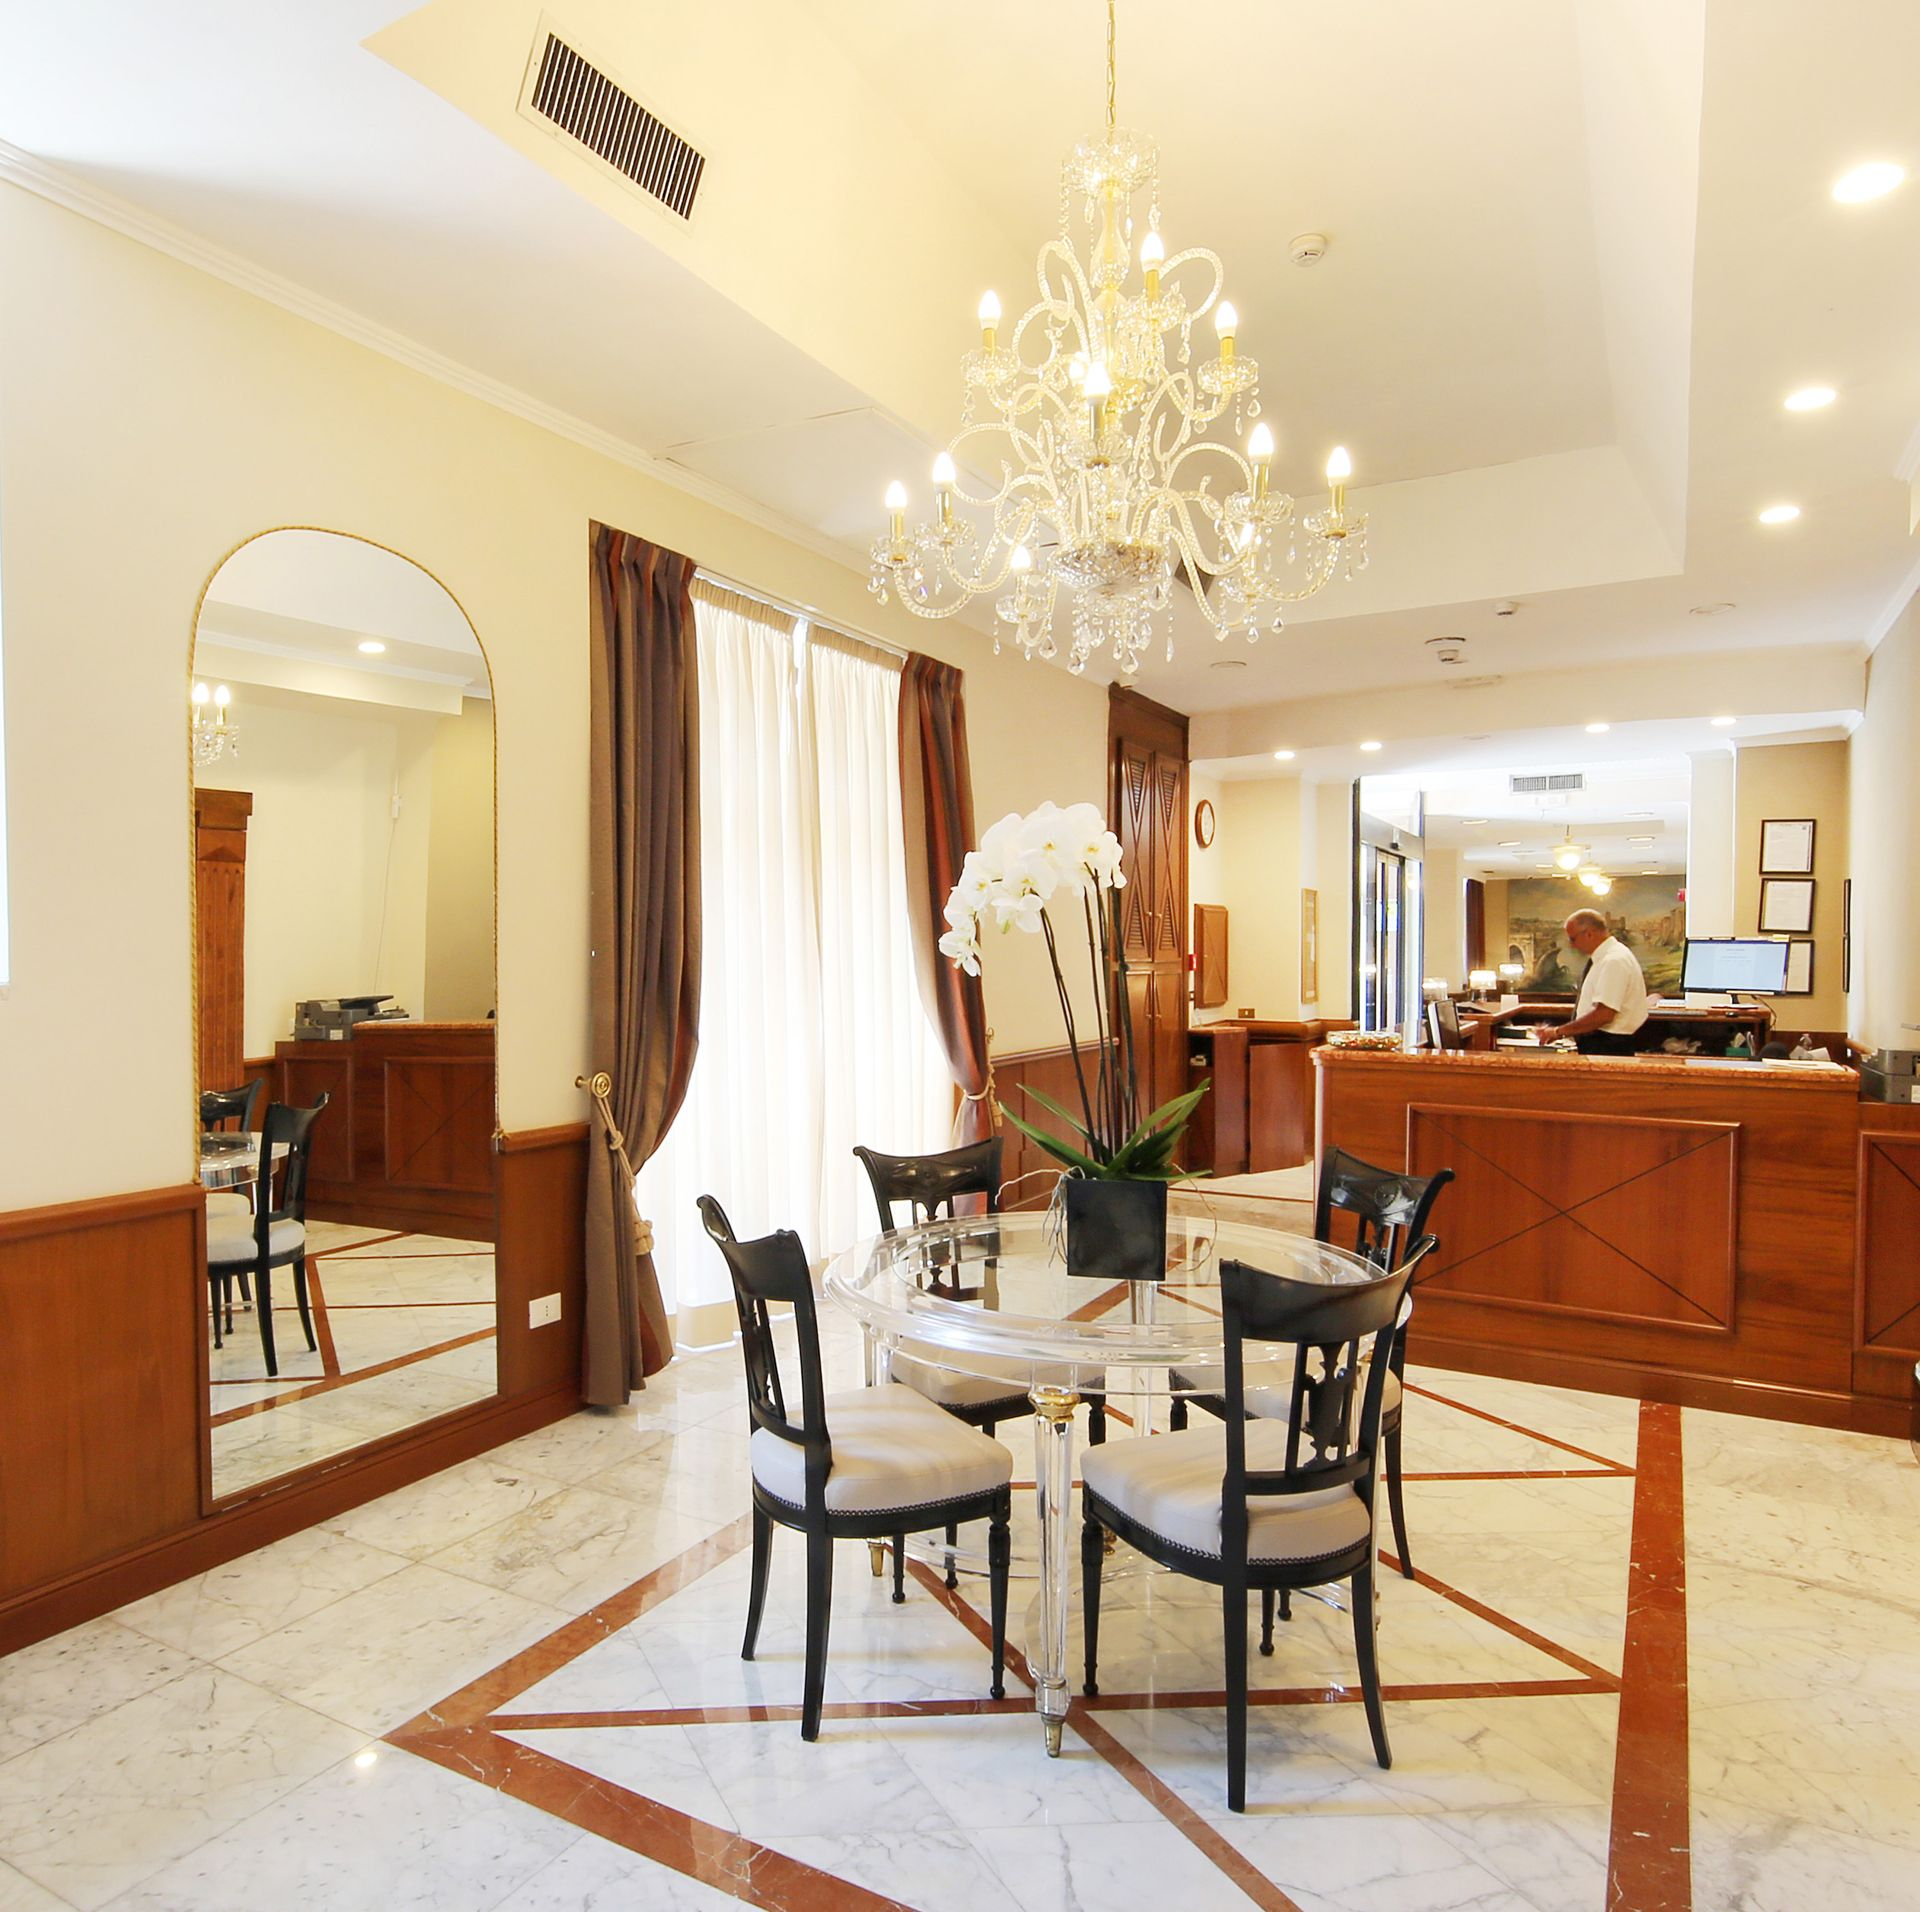 Traiano Hotel Rome Italy Book Online